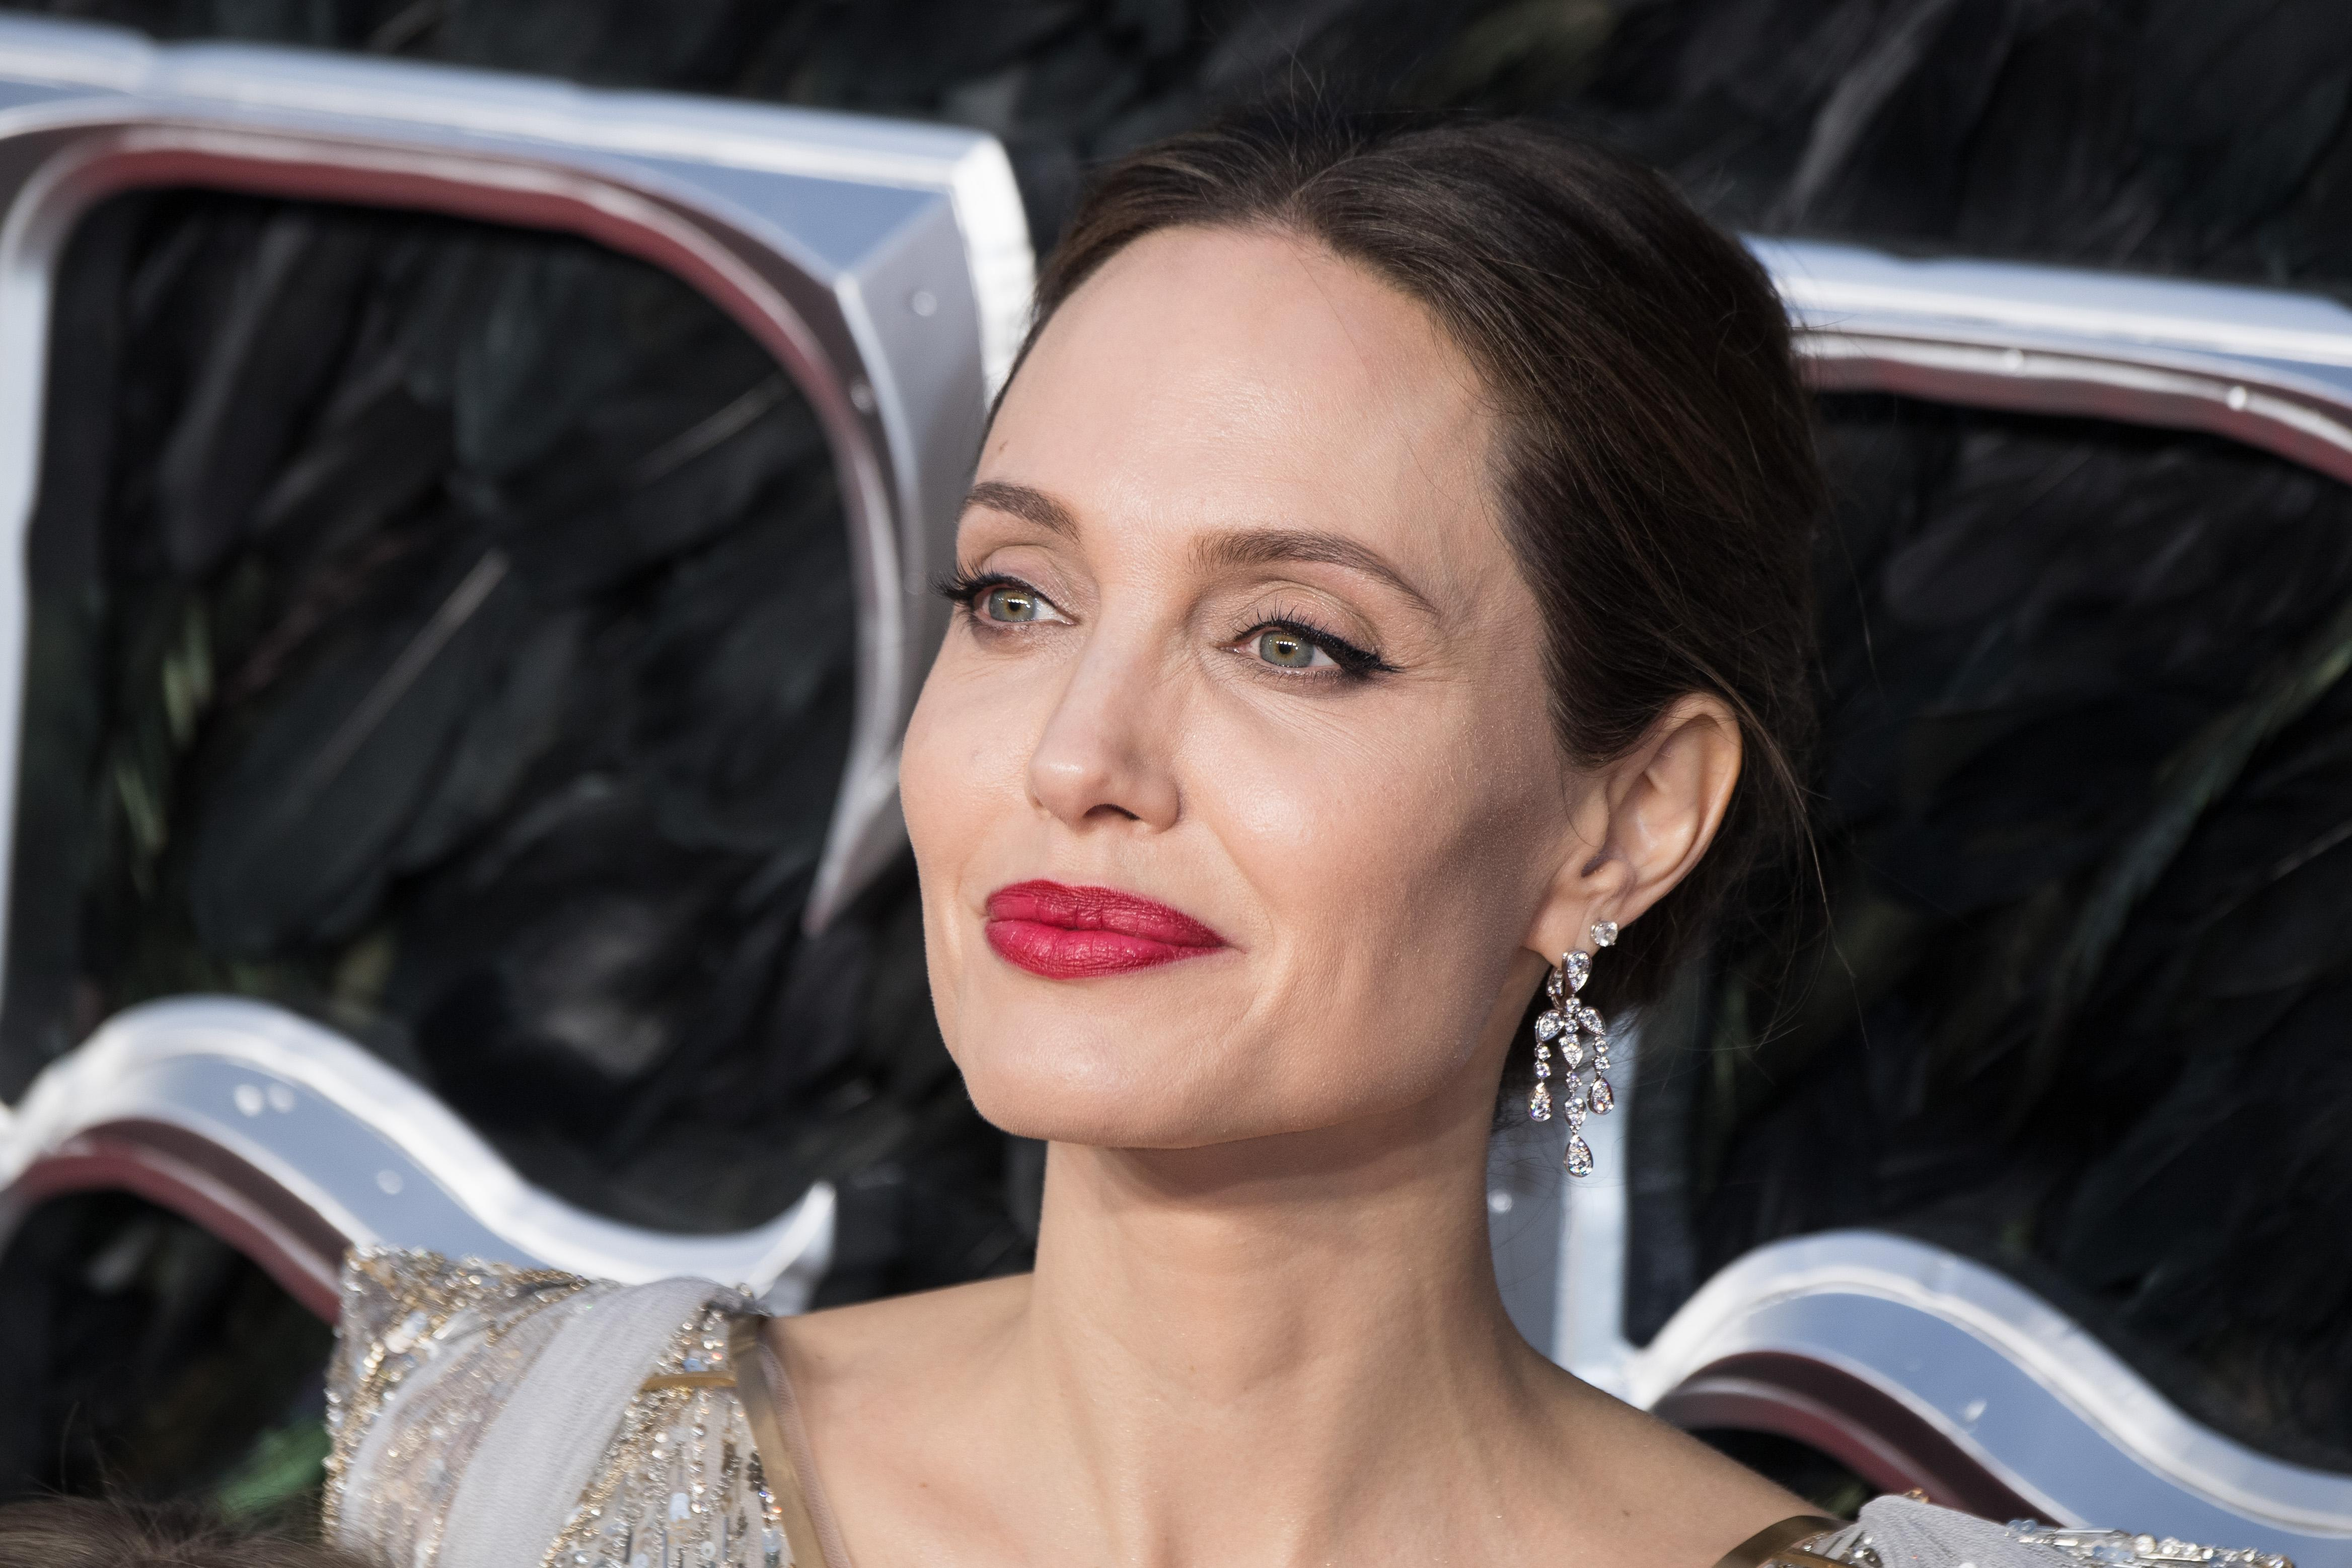 Angelina Jolie Real Nude Pics angelina jolie poses naked on magazine cover, talks 'visible